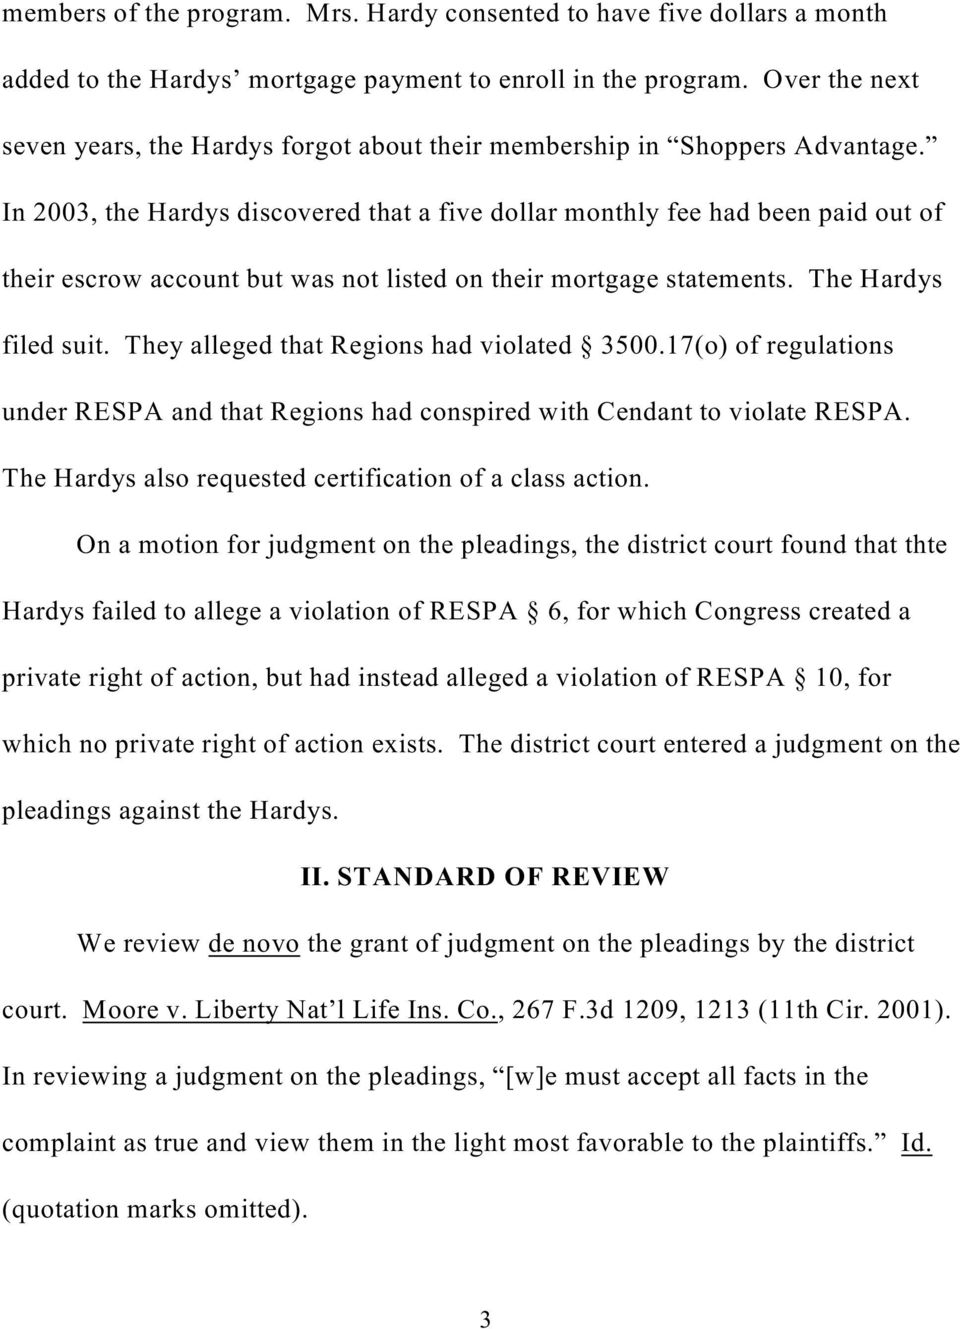 In 2003, the Hardys discovered that a five dollar monthly fee had been paid out of their escrow account but was not listed on their mortgage statements. The Hardys filed suit.